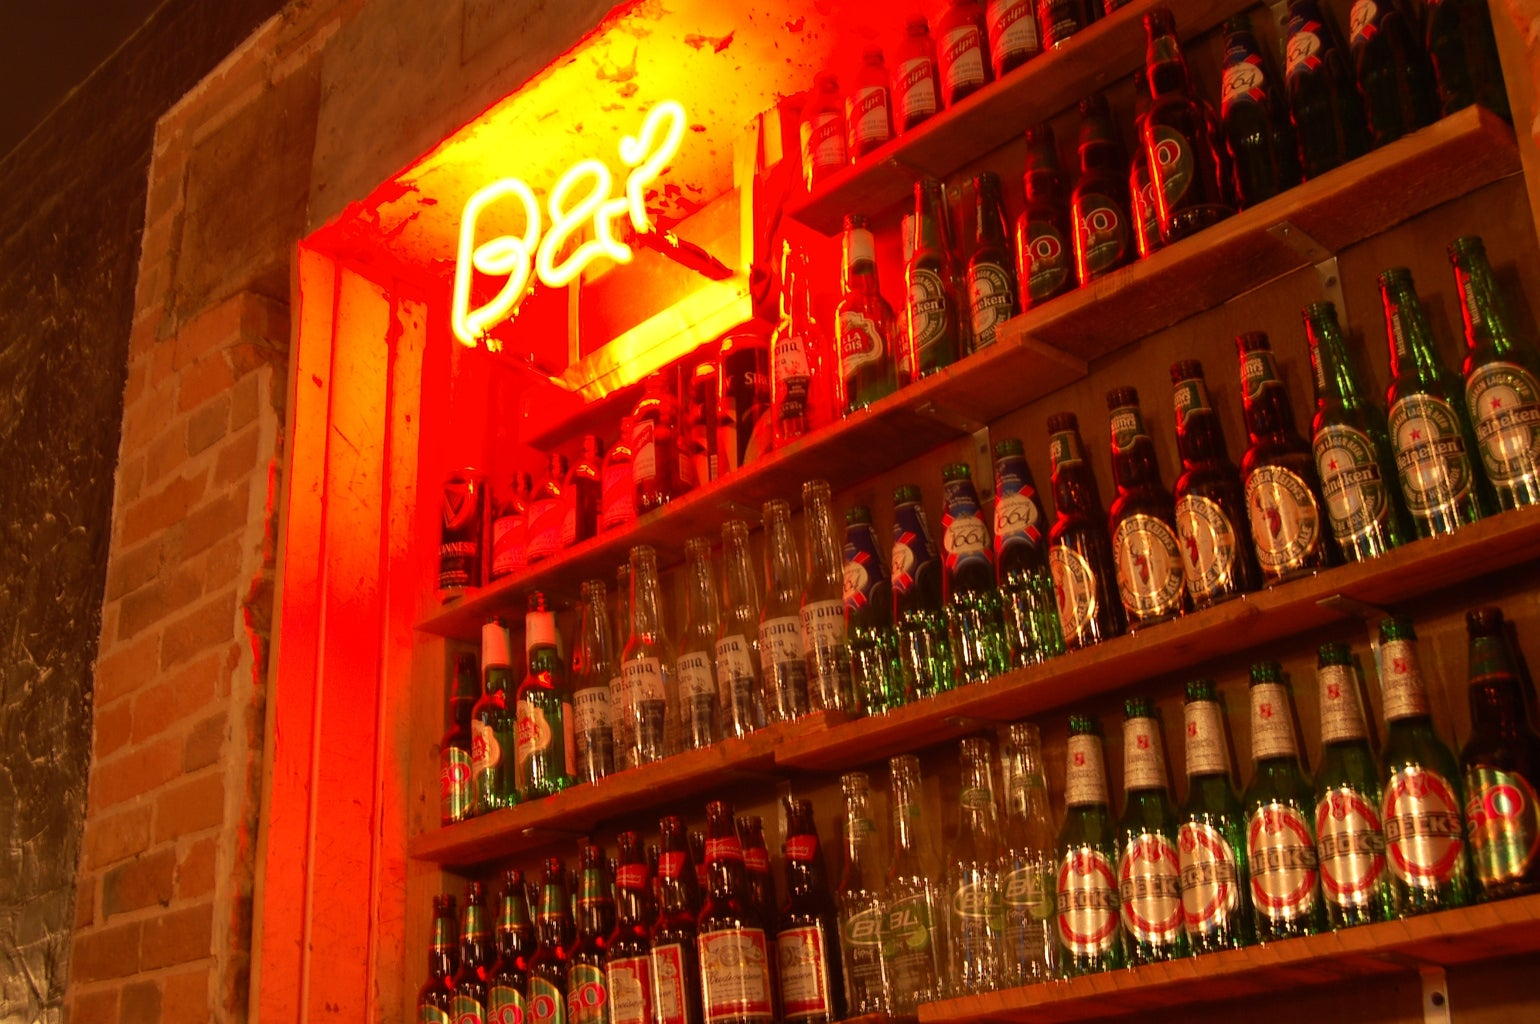 99 Bottles of Beer on the Wall...